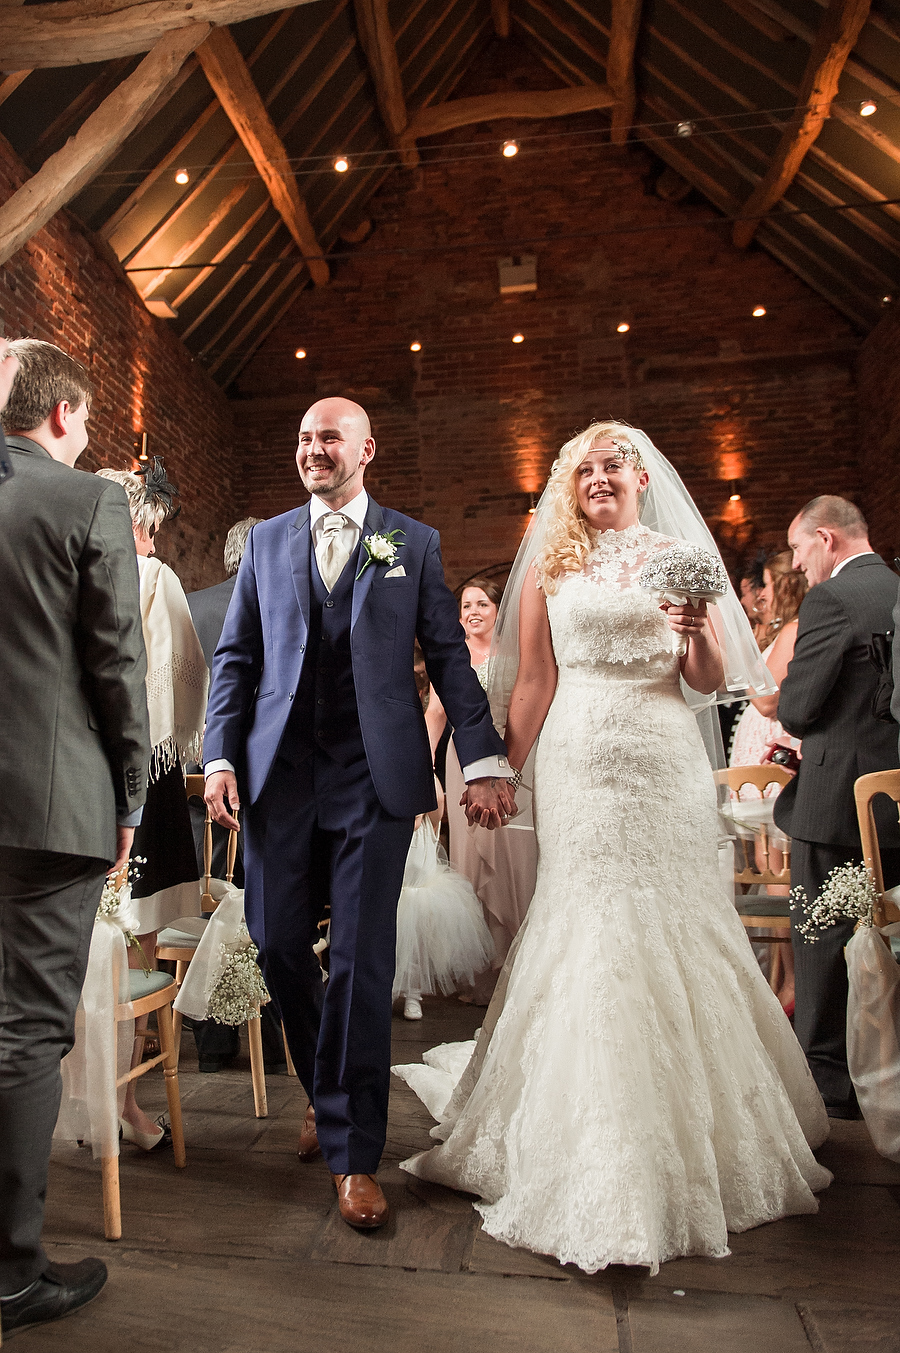 Happy exit of Bride and Groom from Oat Barn ceremony at Packington Moor in Lichfield by Lichfield Reportage Wedding Photographer Barry James